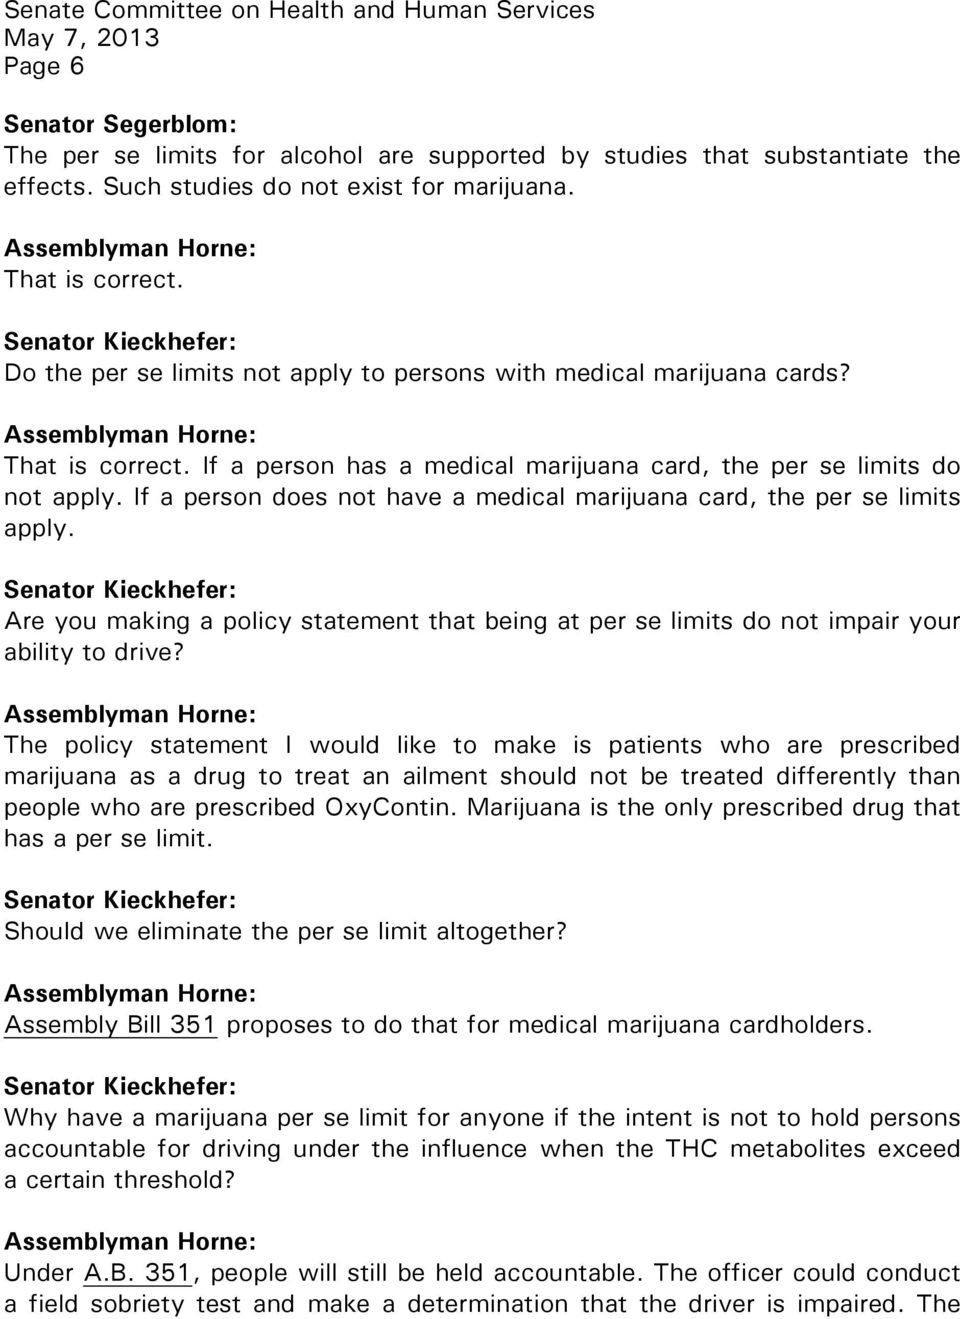 If a person has a medical marijuana card, the per se limits do not apply. If a person does not have a medical marijuana card, the per se limits apply.